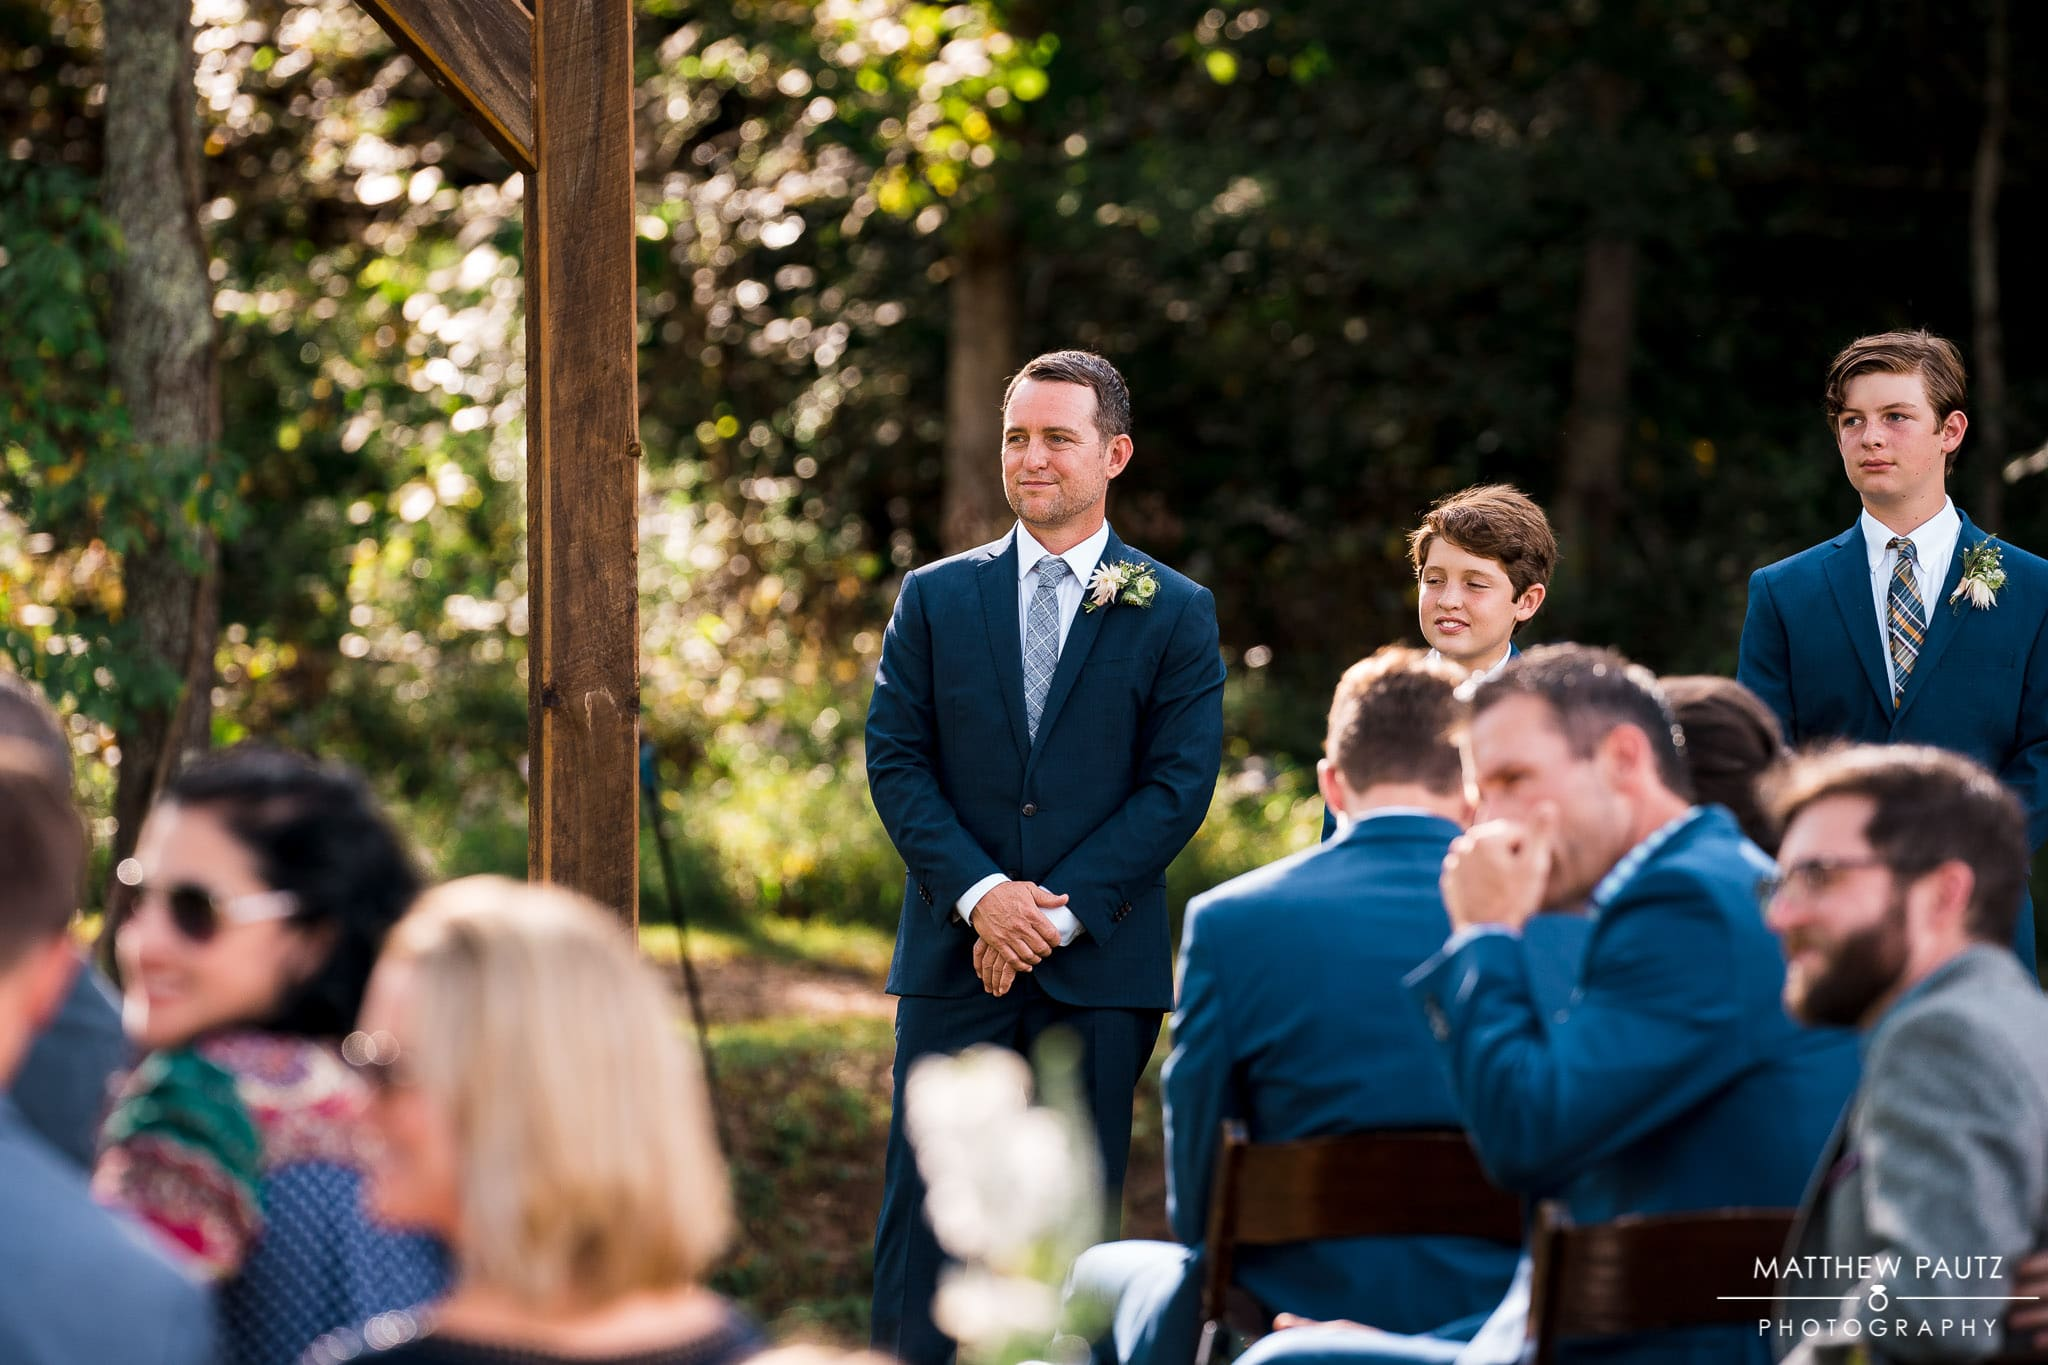 Outdoor wedding ceremony at Junebug Retro resort